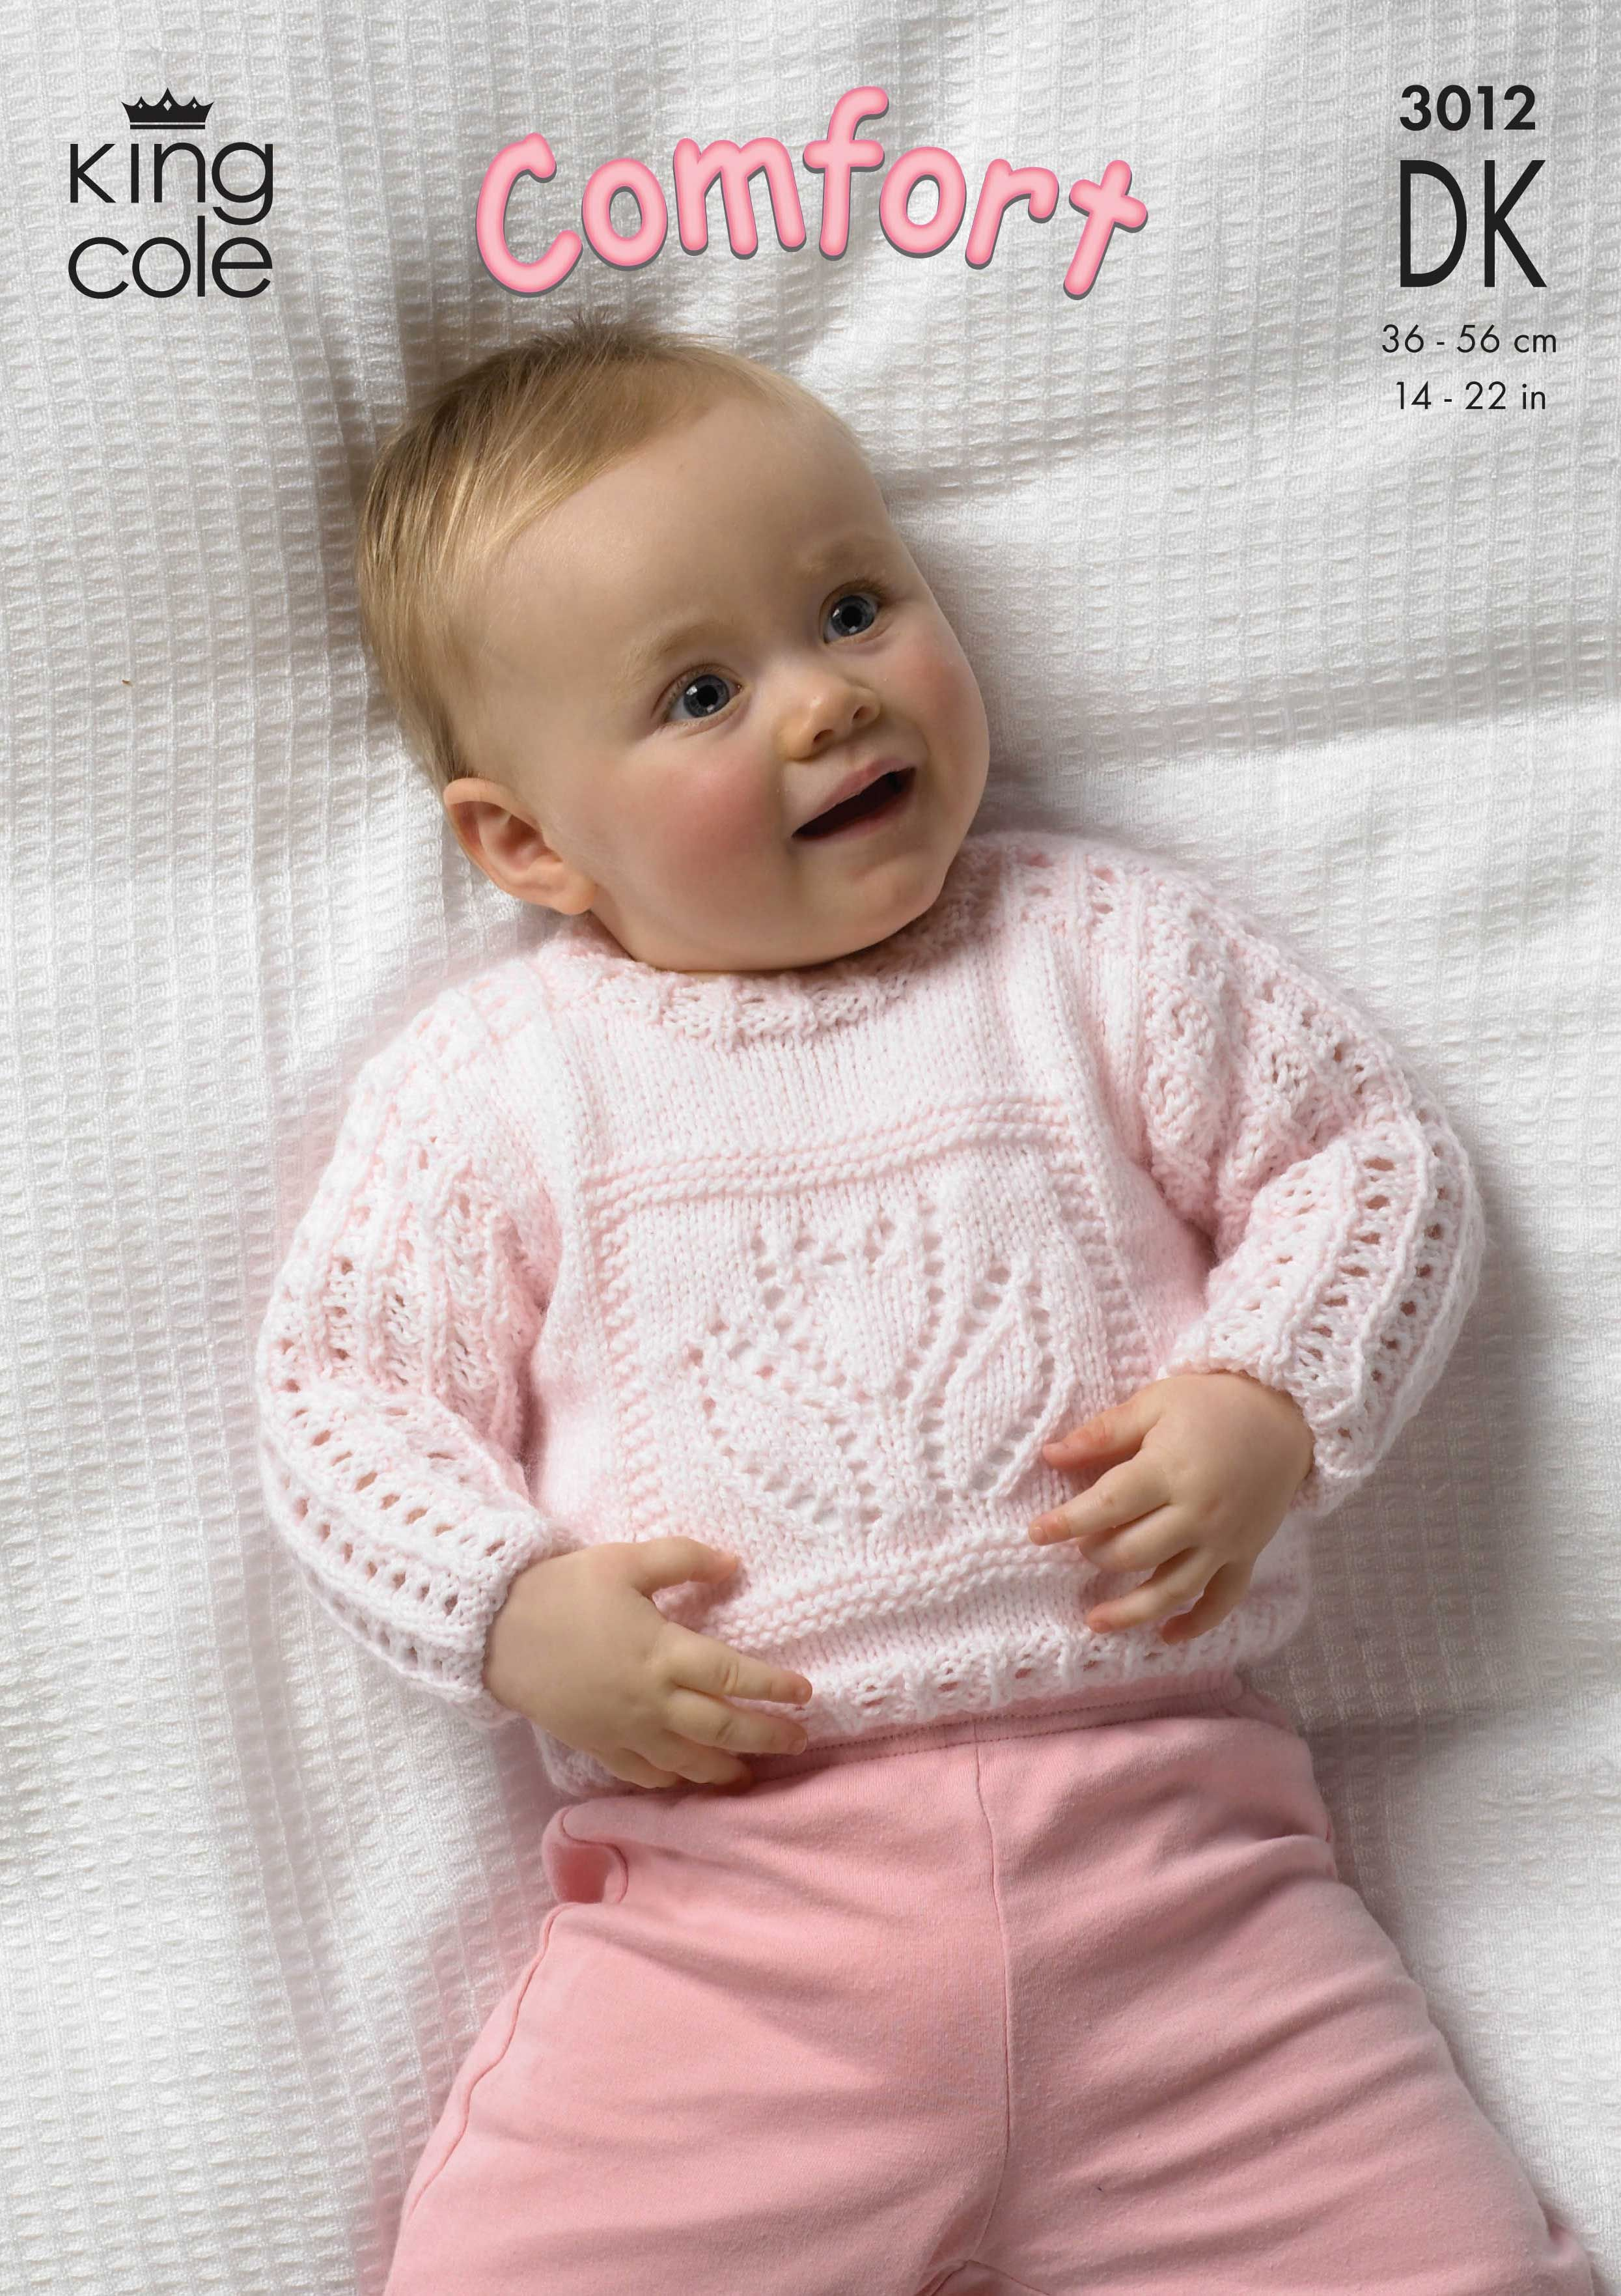 Sweater and Blanket - King Cole | Baby cardigan knitting ...